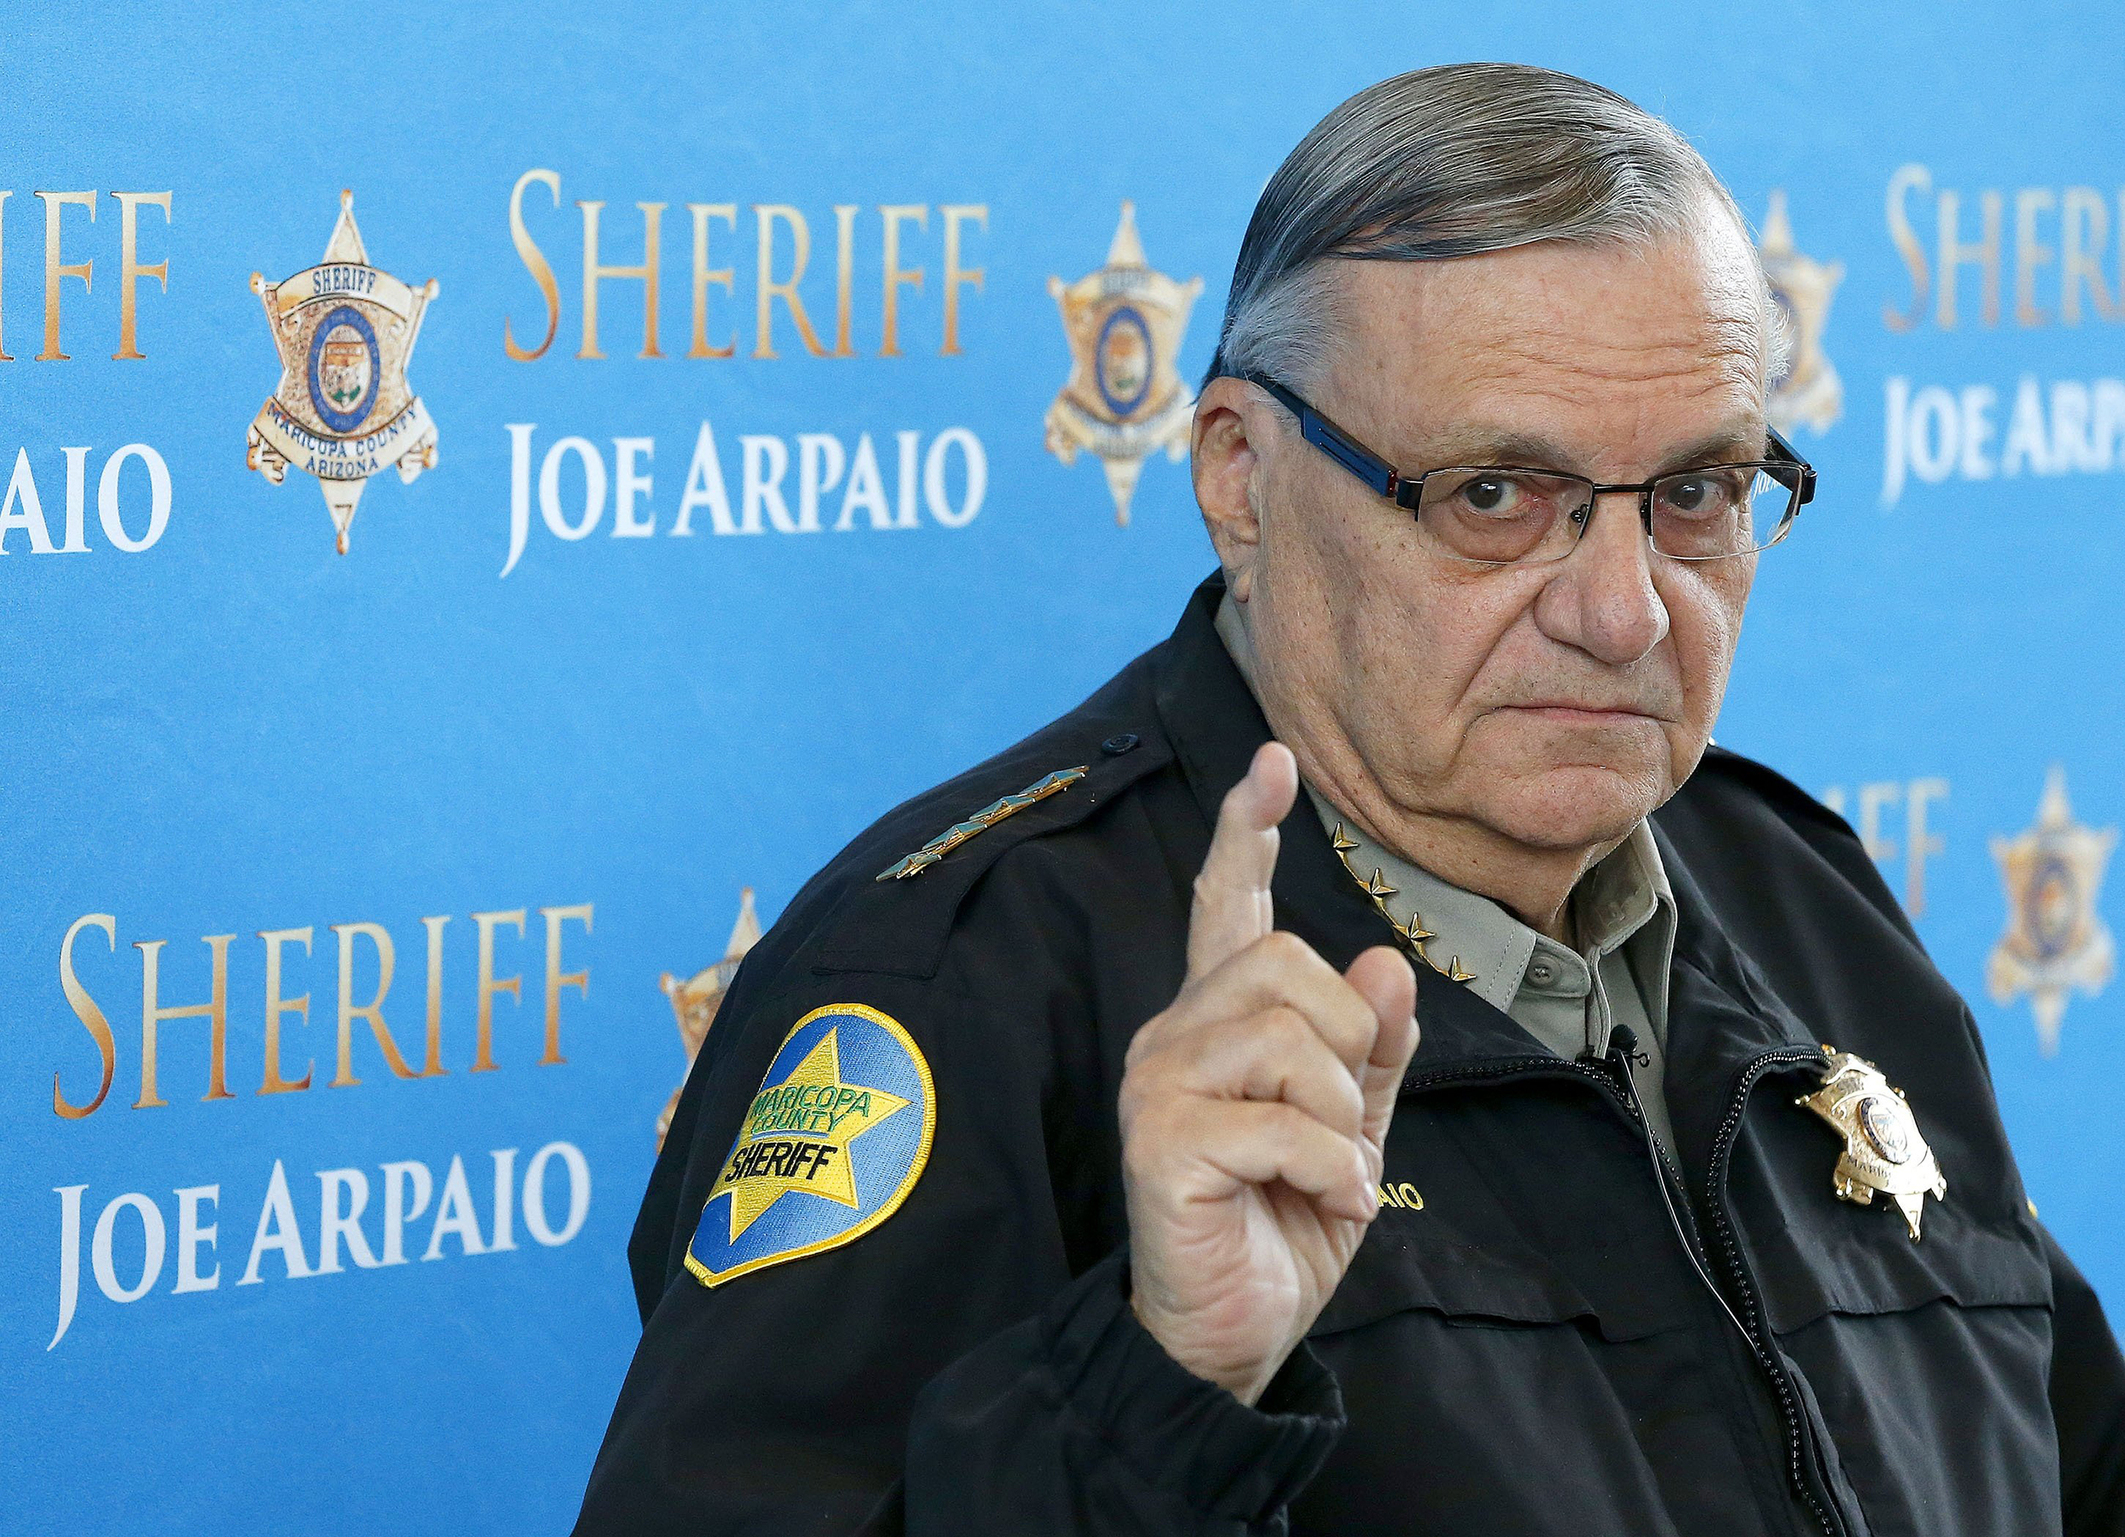 Hurrah!! Sheriff Joe Arpaio puts inmates on 'bread and water' for flag desecration